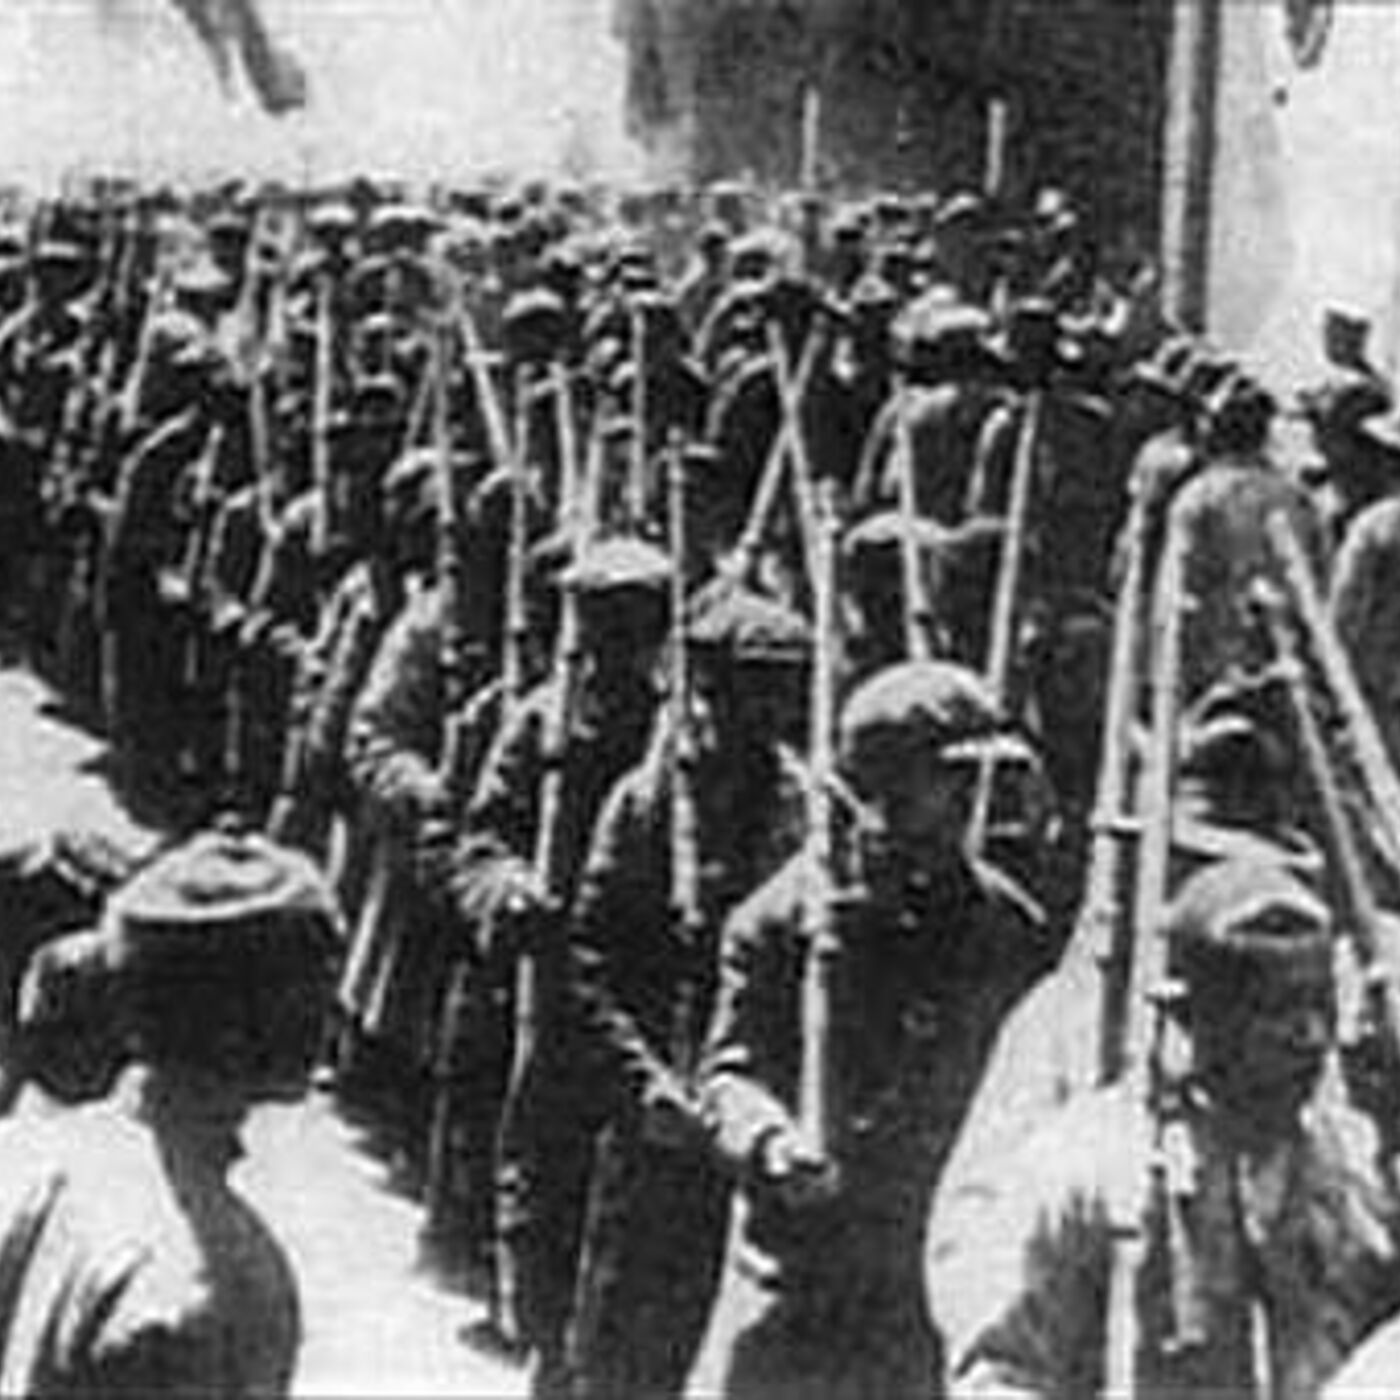 The Third Armed Uprising in Shanghai